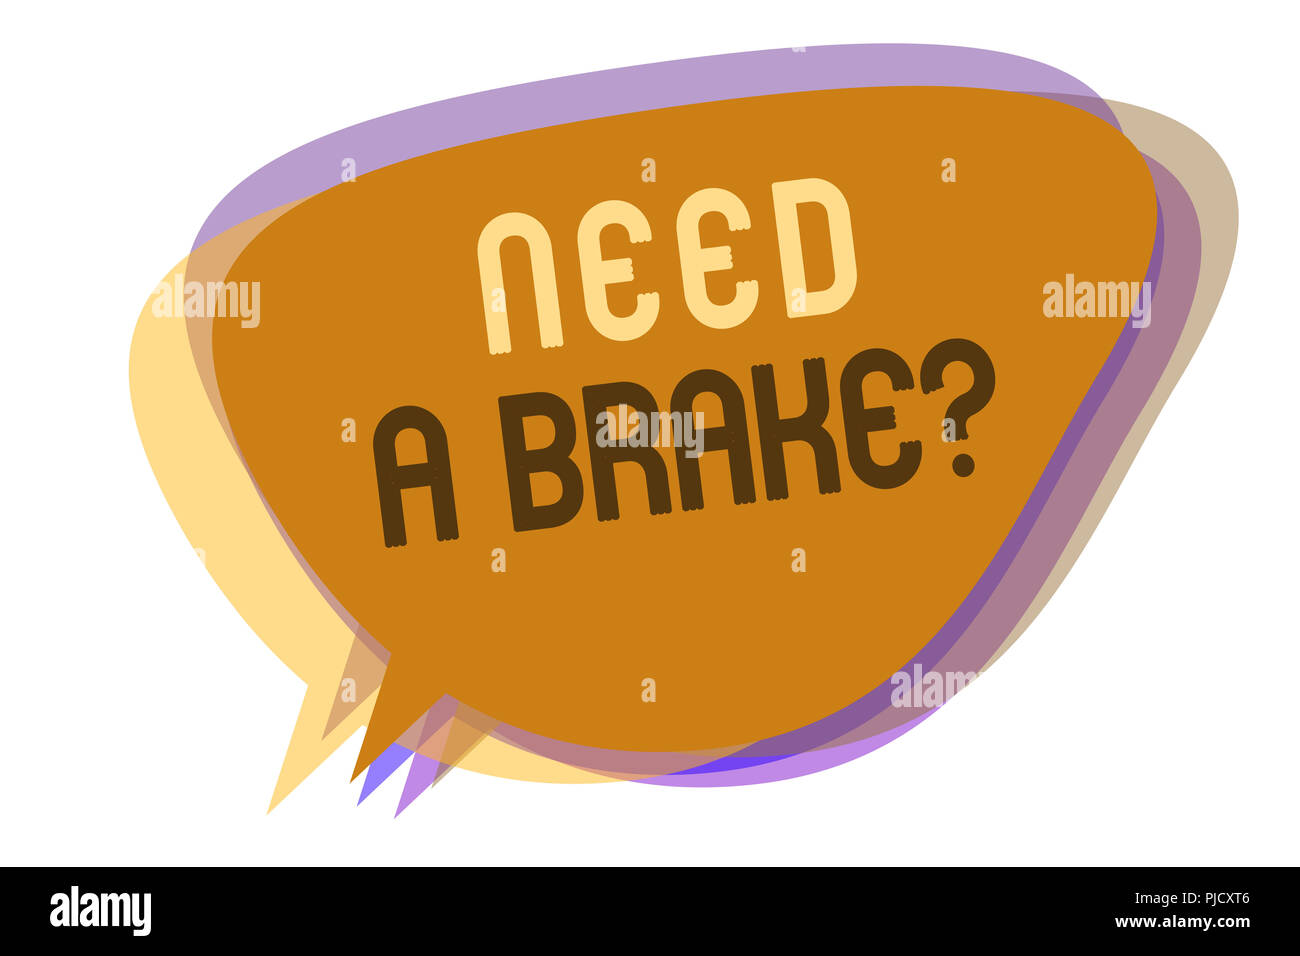 Word writing text Need A Brake question. Business concept for More Time to Relax Chill Out Freedom Stress Free Speech bubble idea message reminder sha - Stock Image